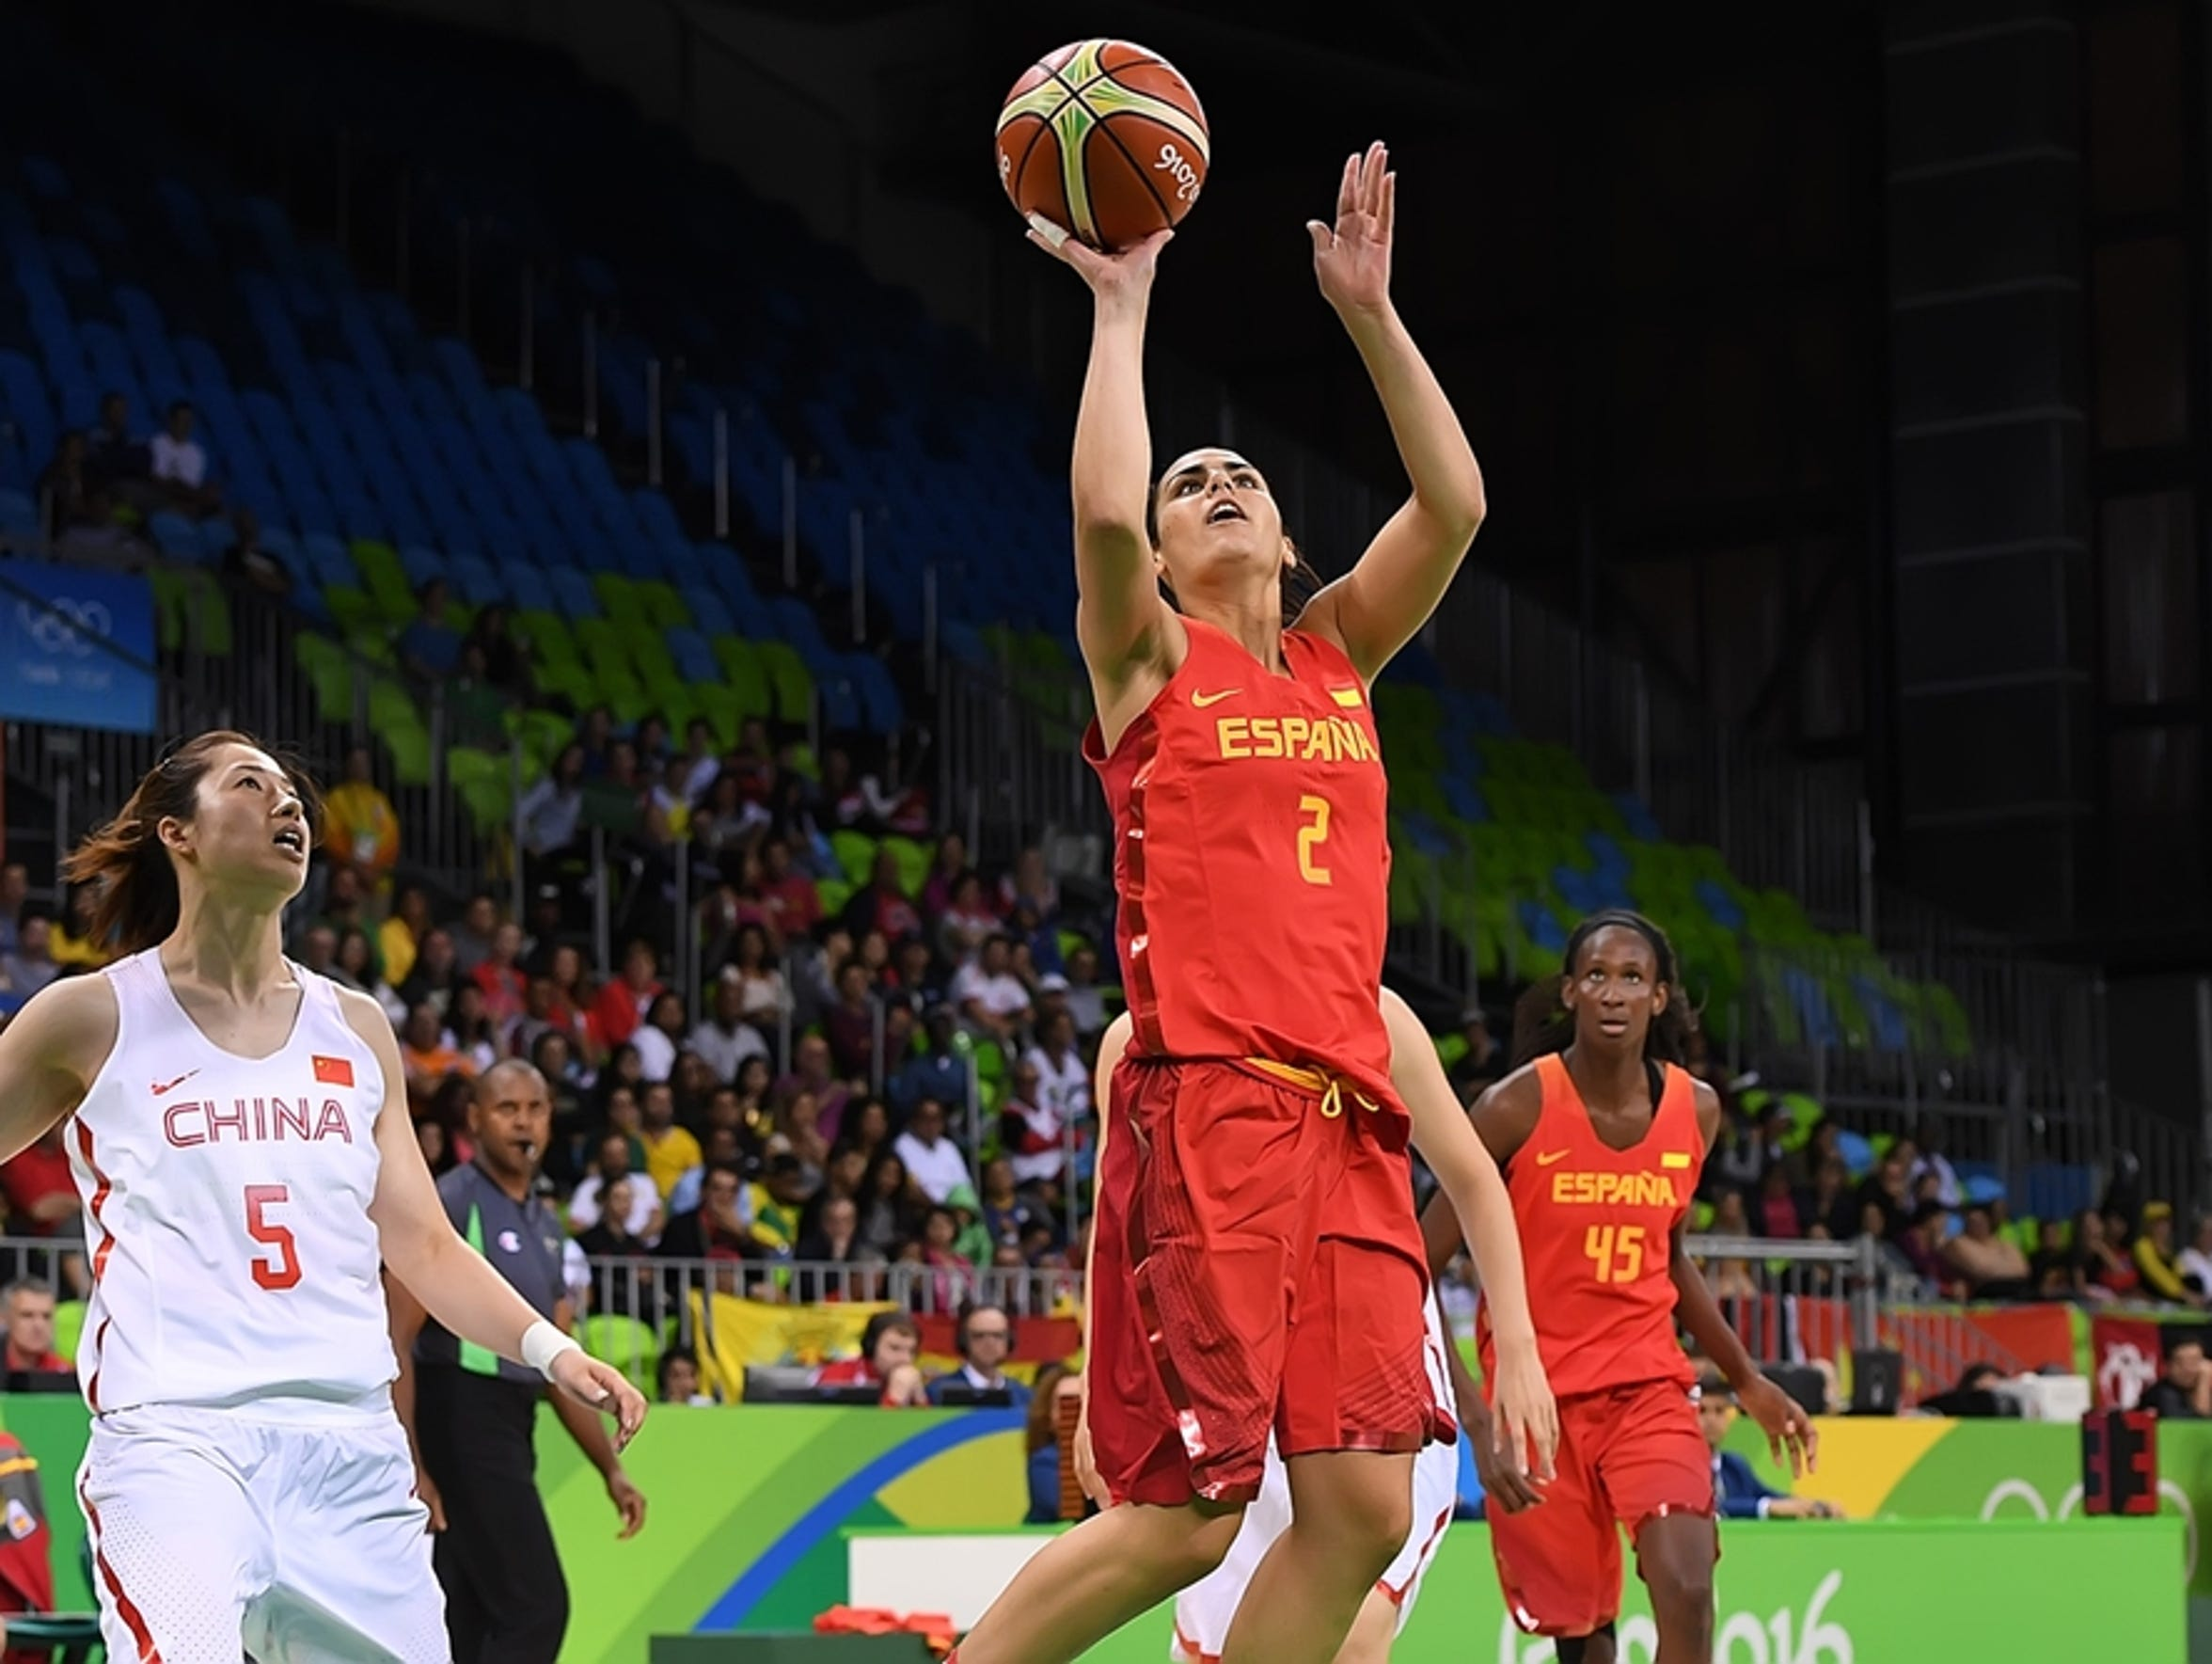 Romero scores two of her 16 points against China at